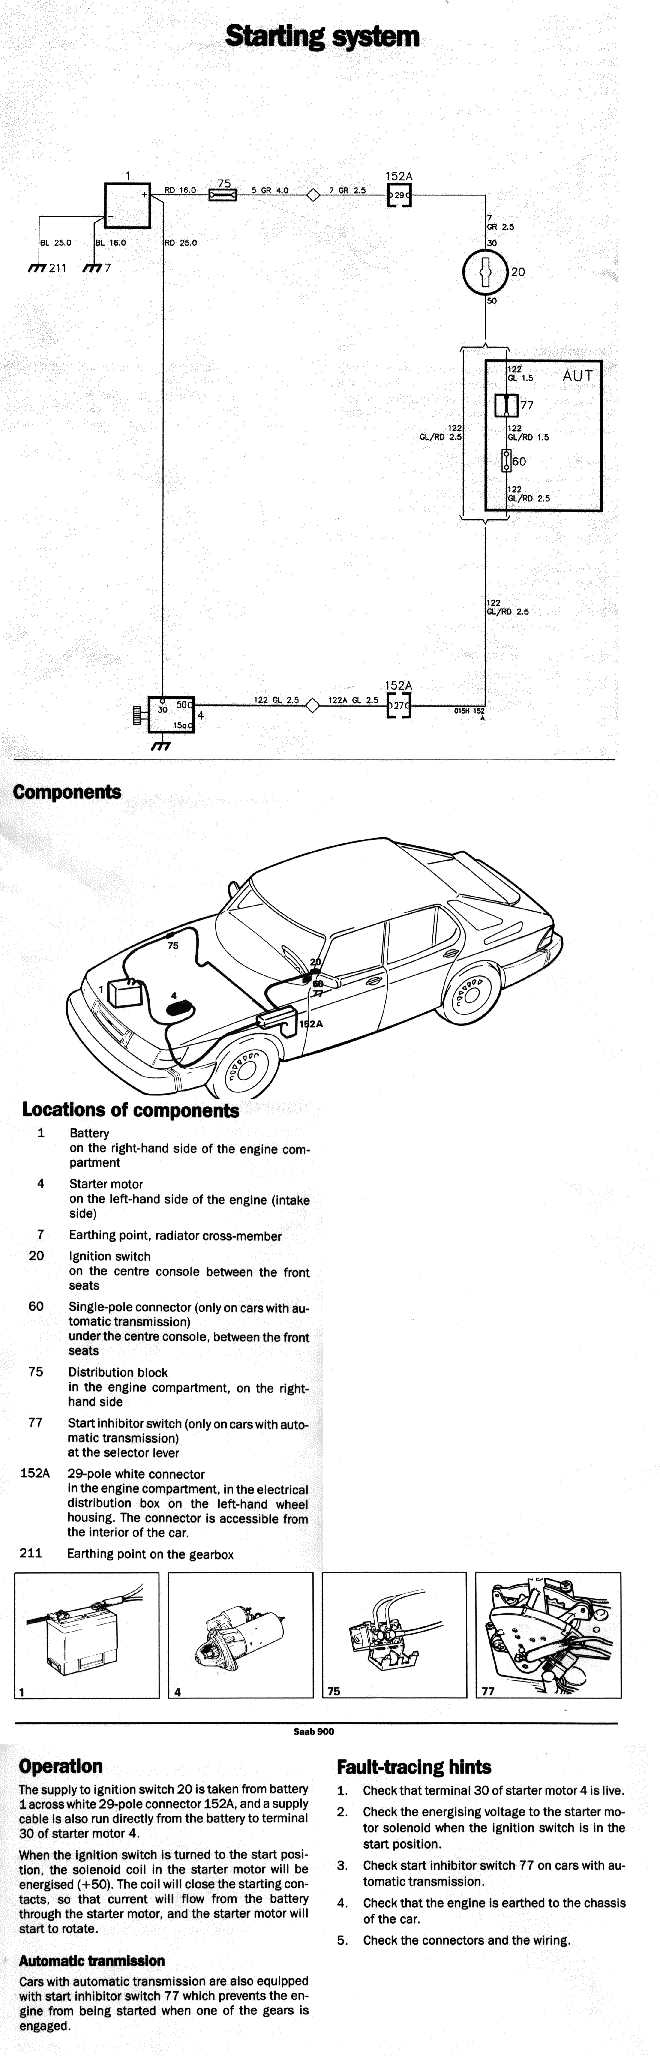 Electrical 900 89 90 Wiring Diagram For 1990 Saab 38 Negative Distribution Terminal 158 In The Box 40 Earthing Point 201 Engine